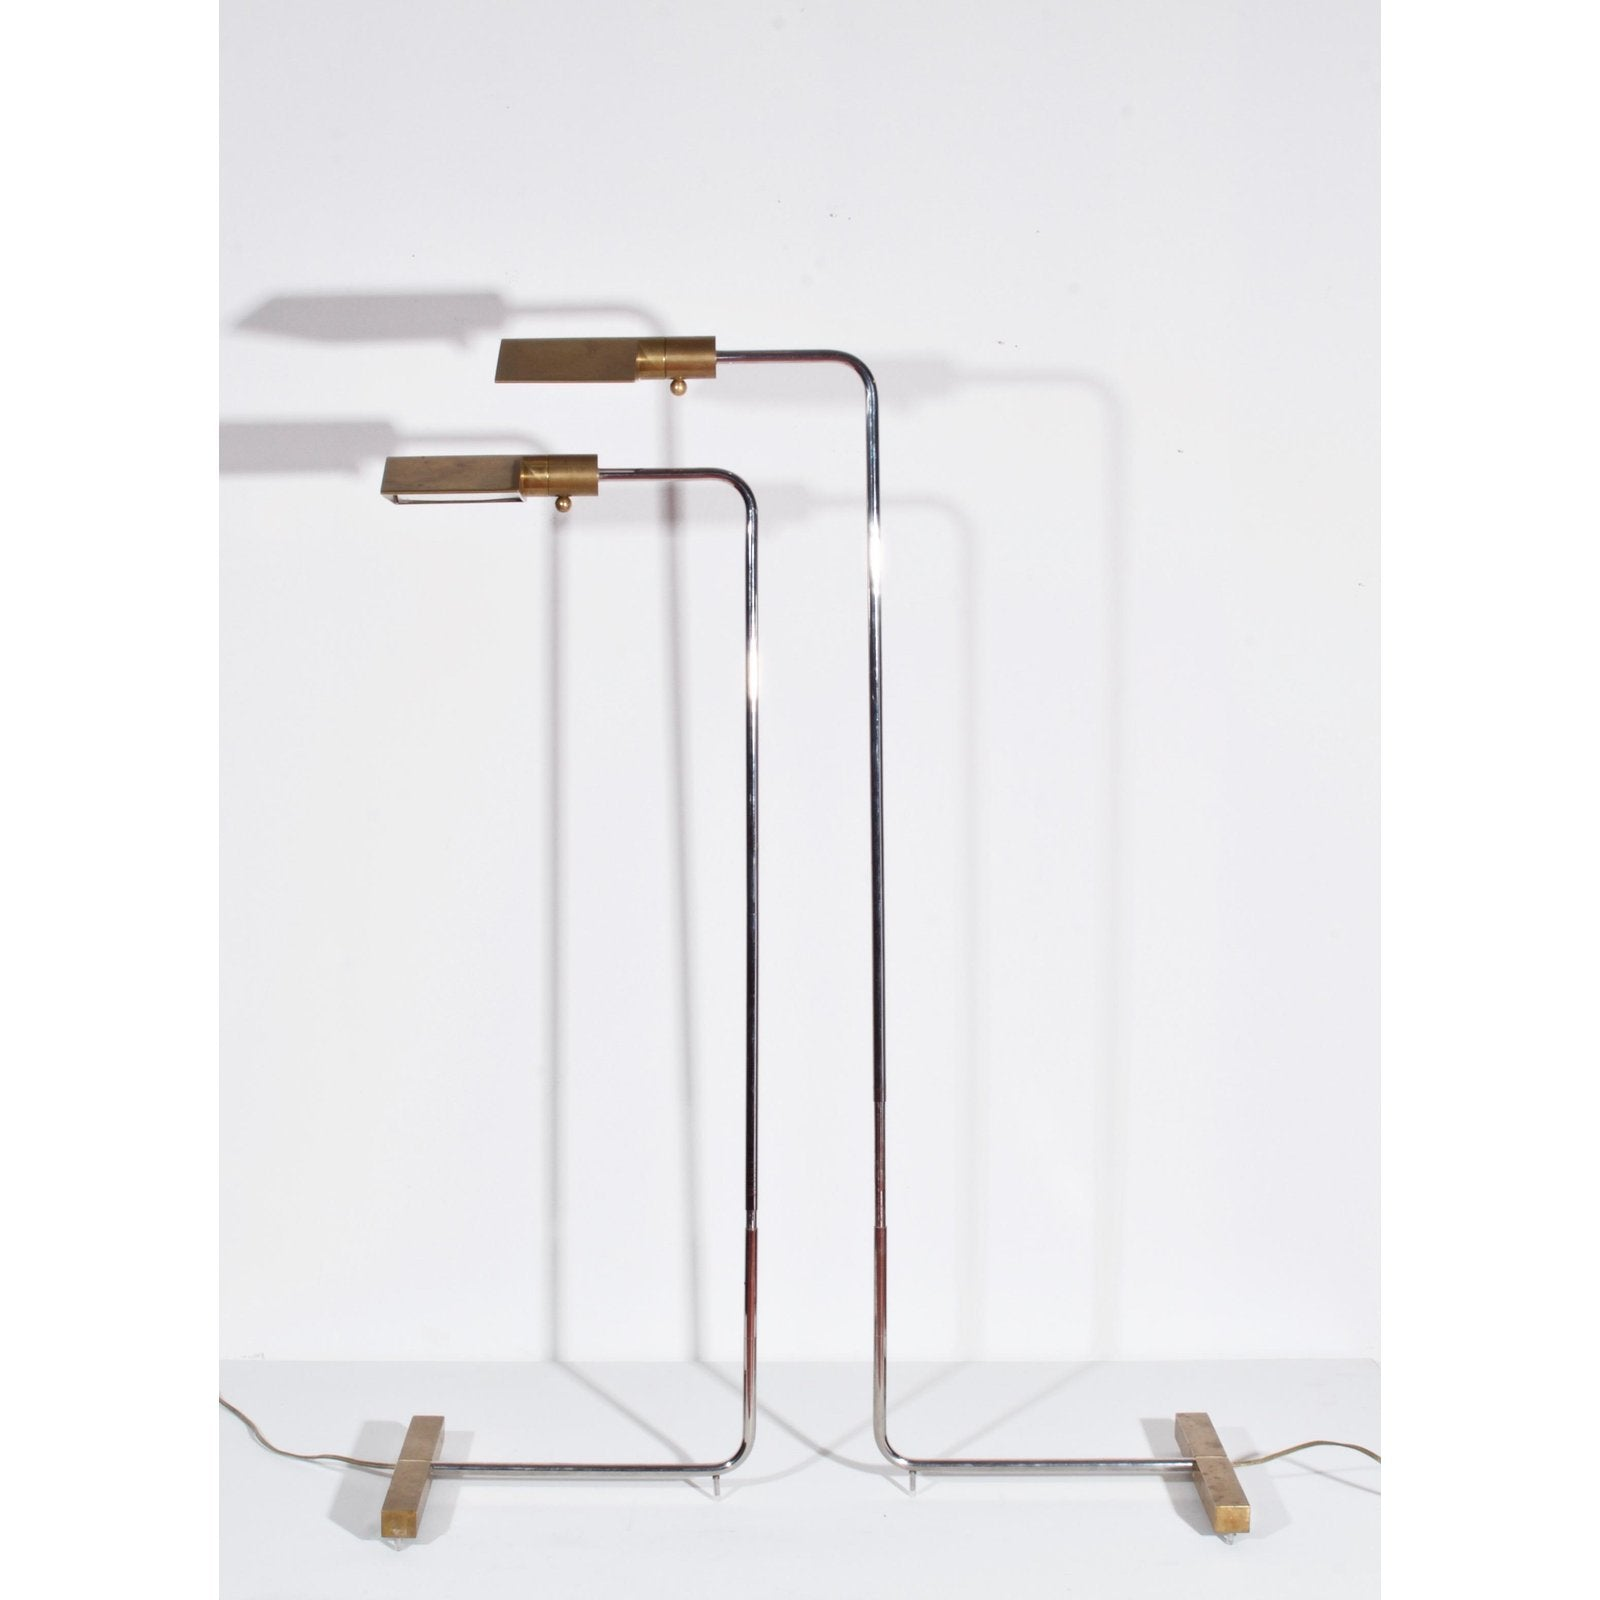 CEDRIC HARTMAN EARLY PAIR OF BRASS AND CHROME SWIVEL FLOOR LAMPS, 1960'S